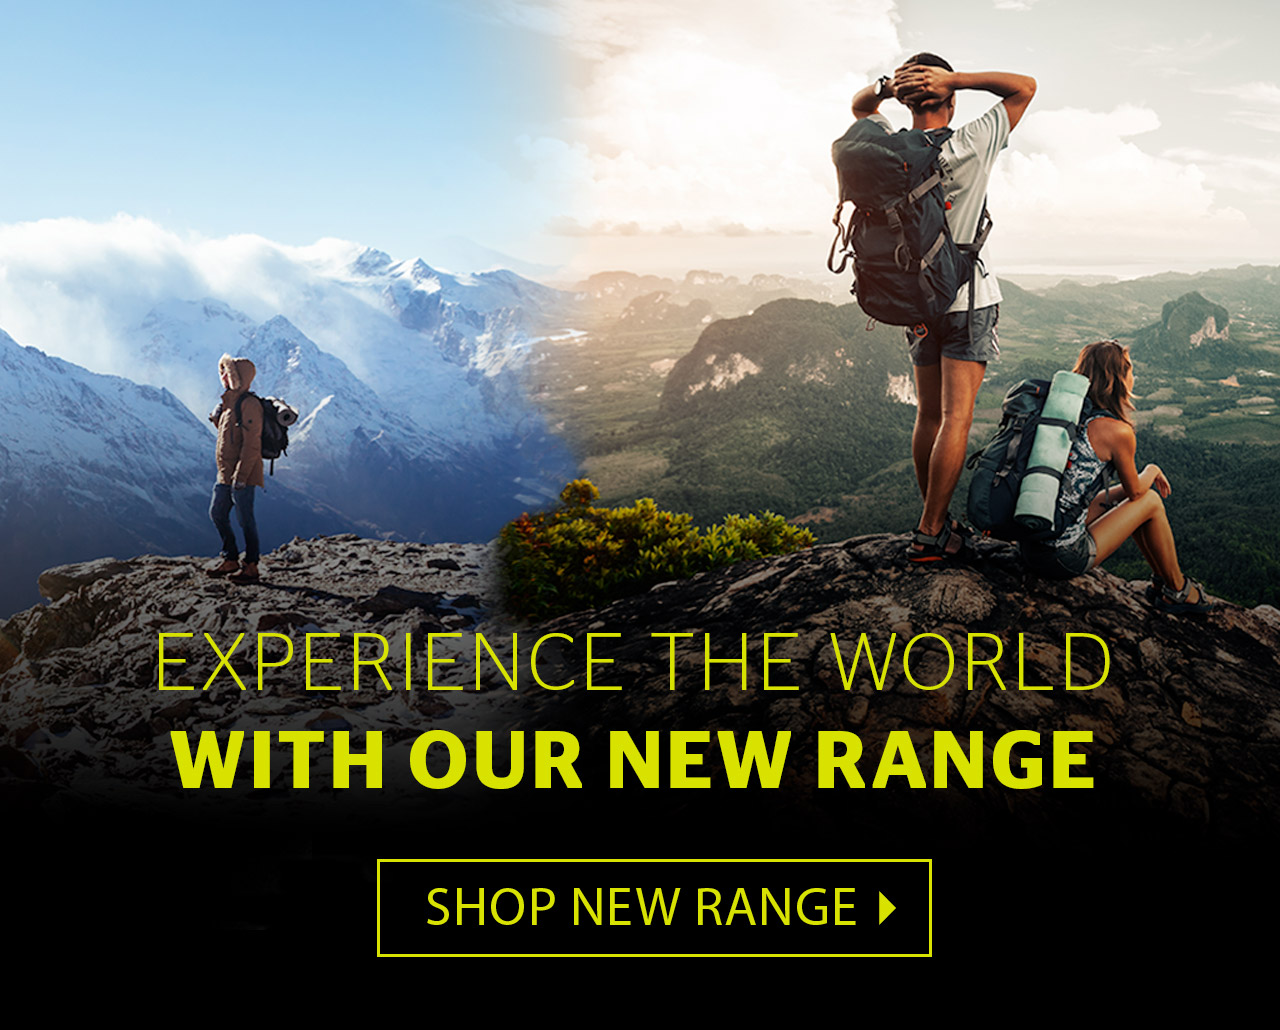 New walking range  Experience the world with your favourite outdoor brands f09f805d2